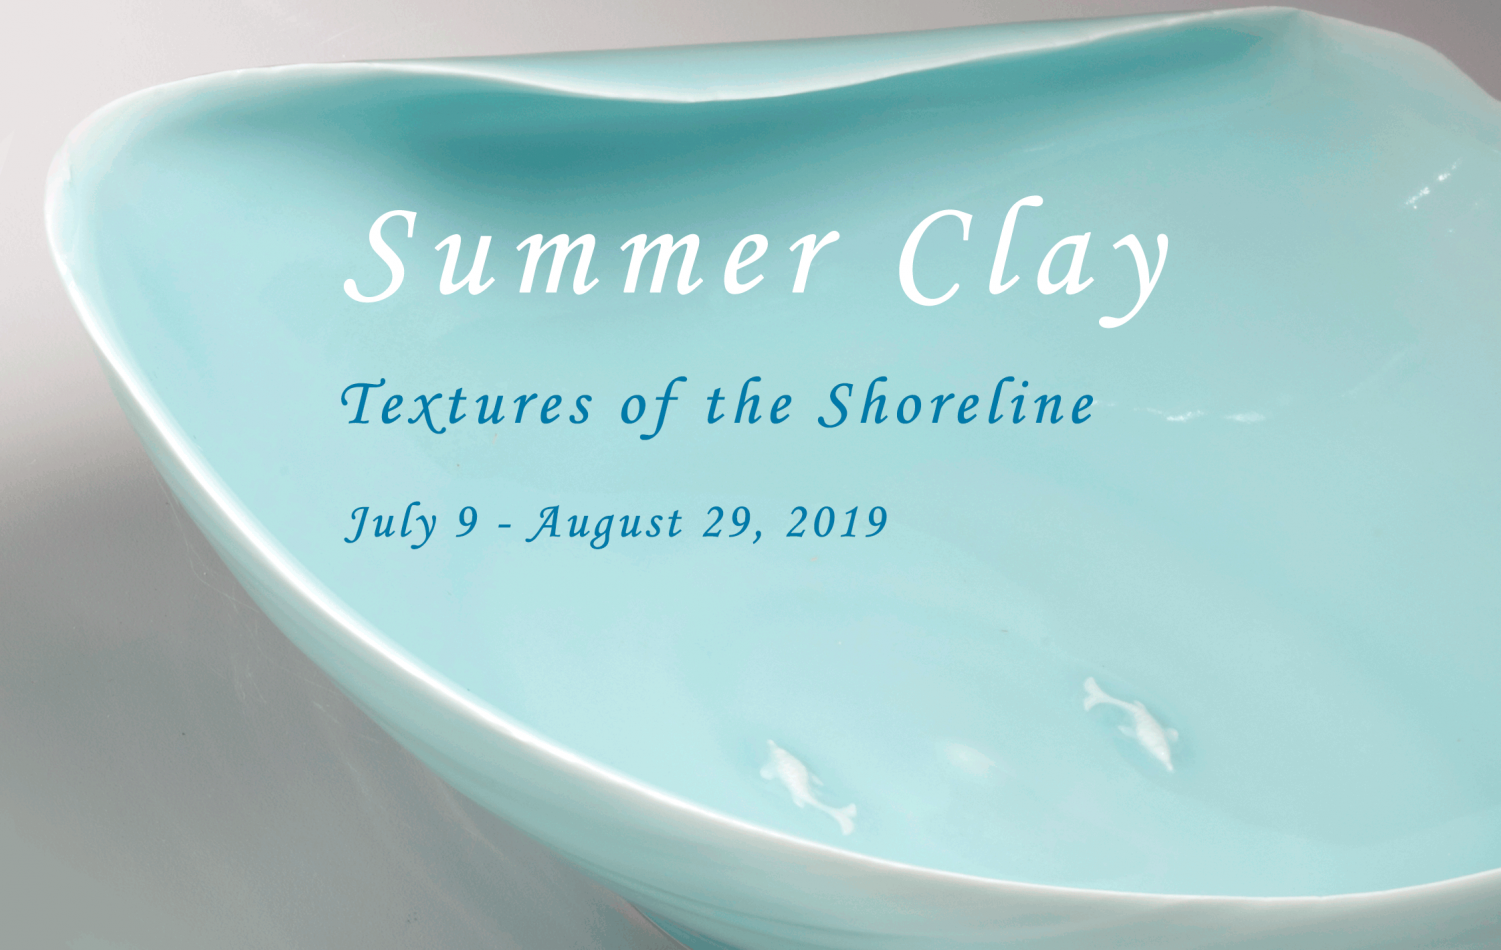 Summer Clay: Textures of The Shoreline